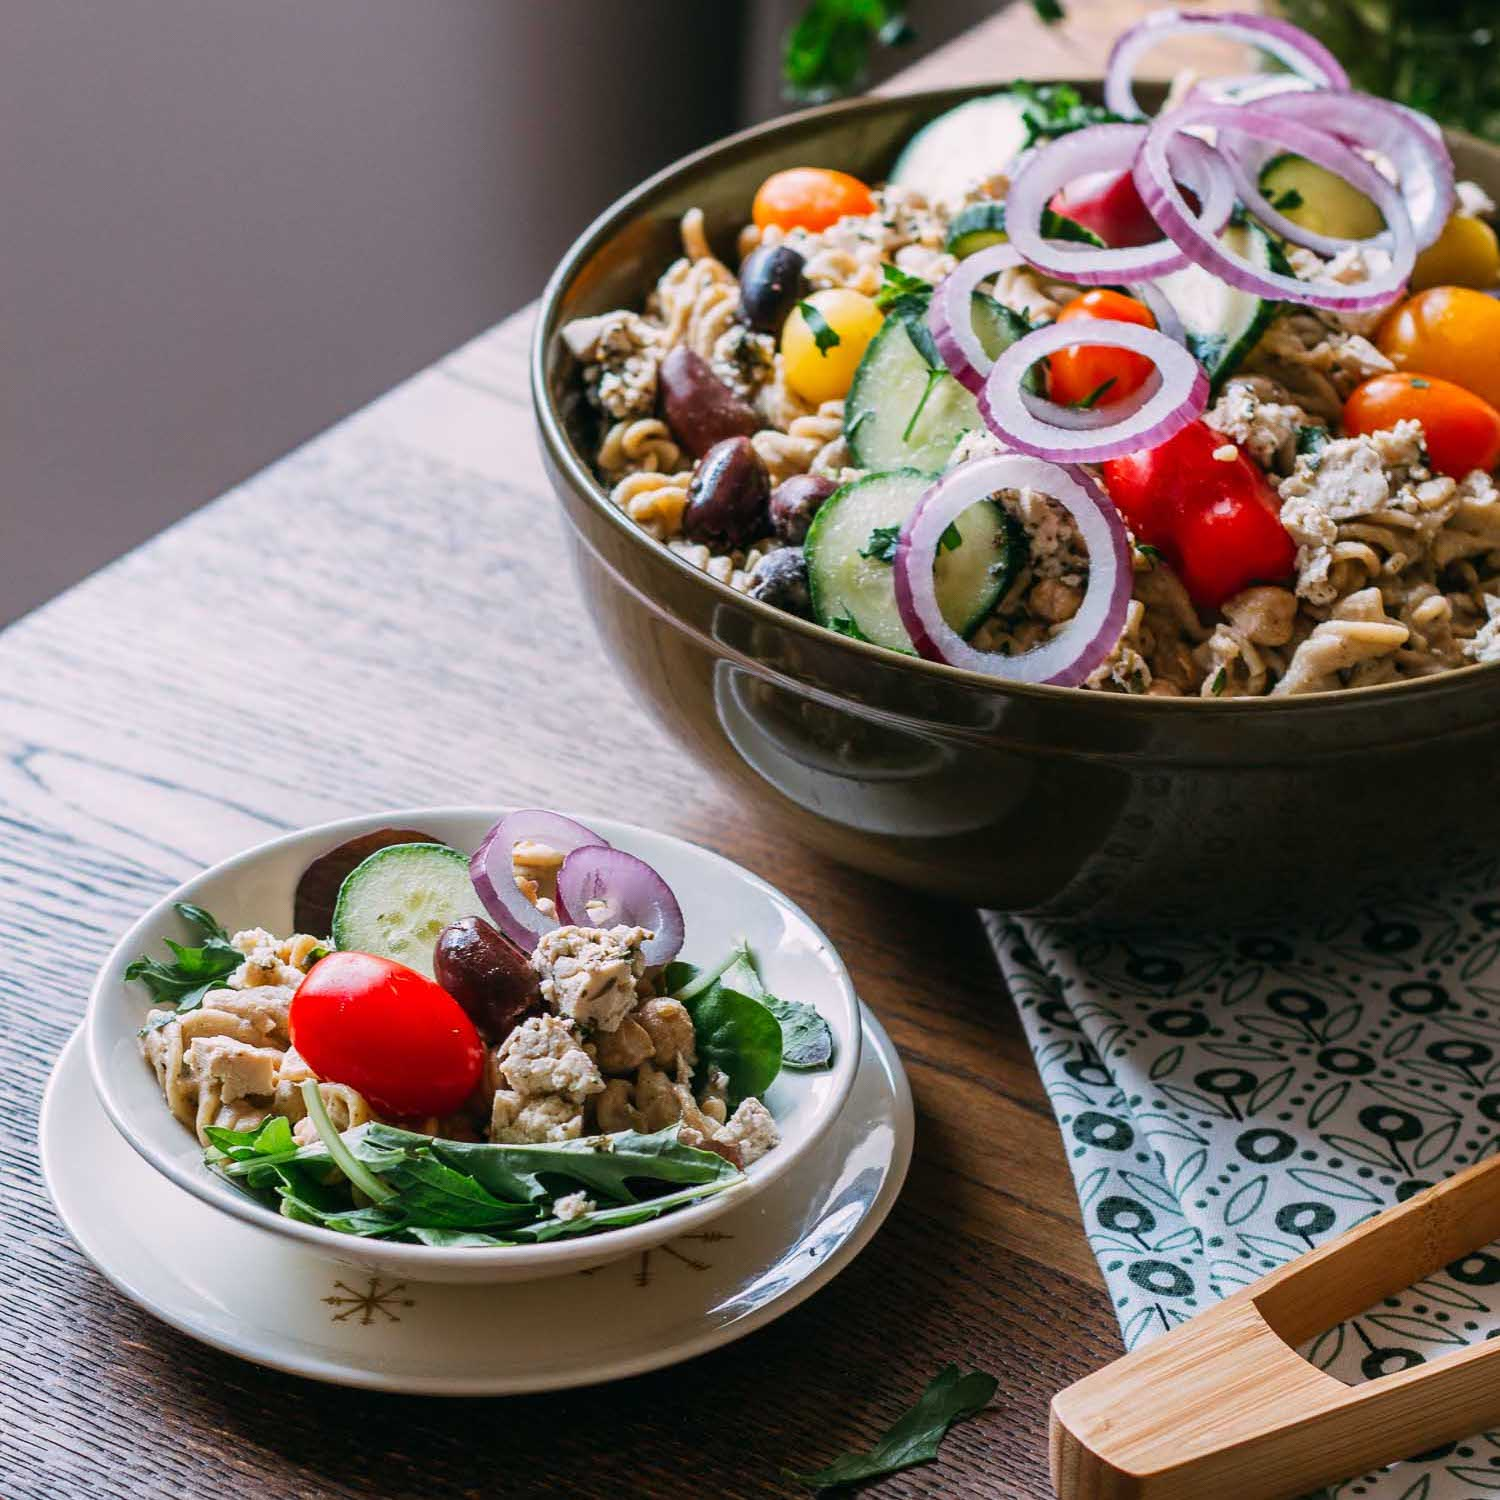 Greek Chickpea Pasta Salad #plantbased #dinner #simple #salad #pasta #kids | Veeg